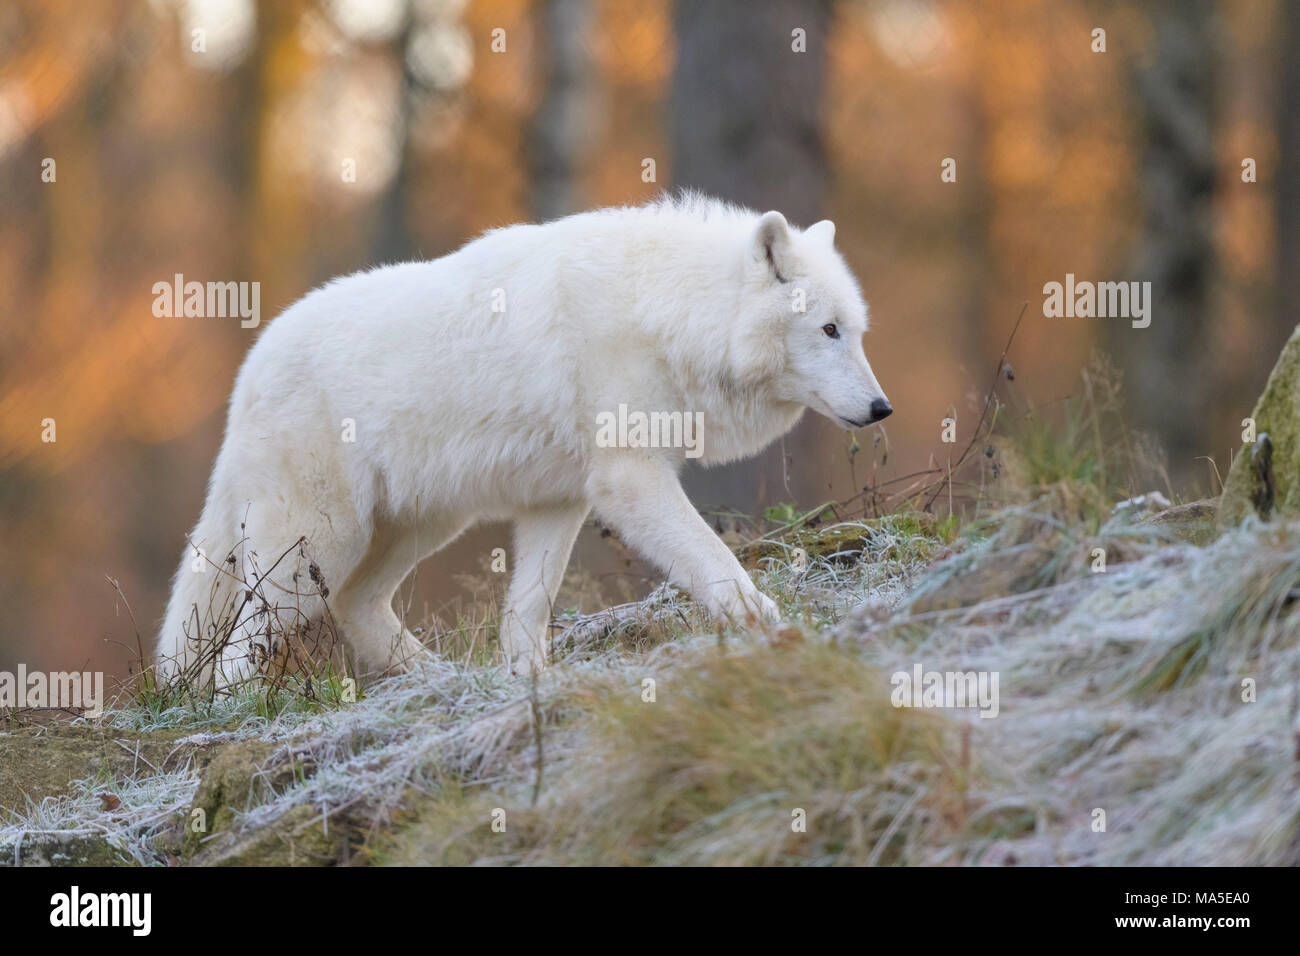 Arctic Wolf, Polar Wolf, Canis lupus arctos, in winter, Germany - Stock Image